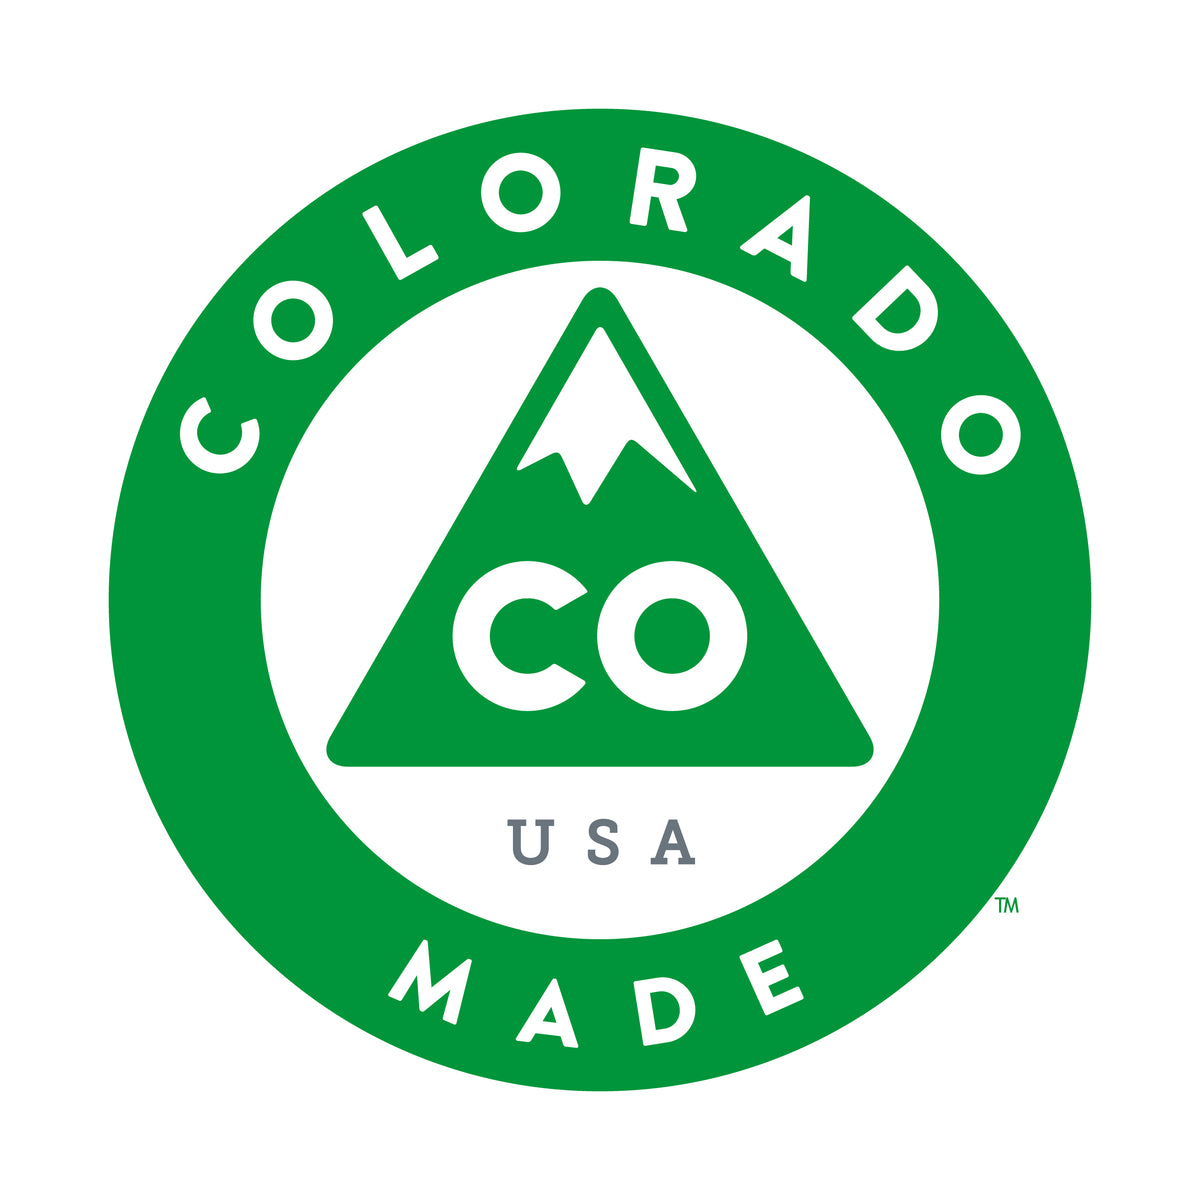 Khala & CO zero waste provisions made in Colorado